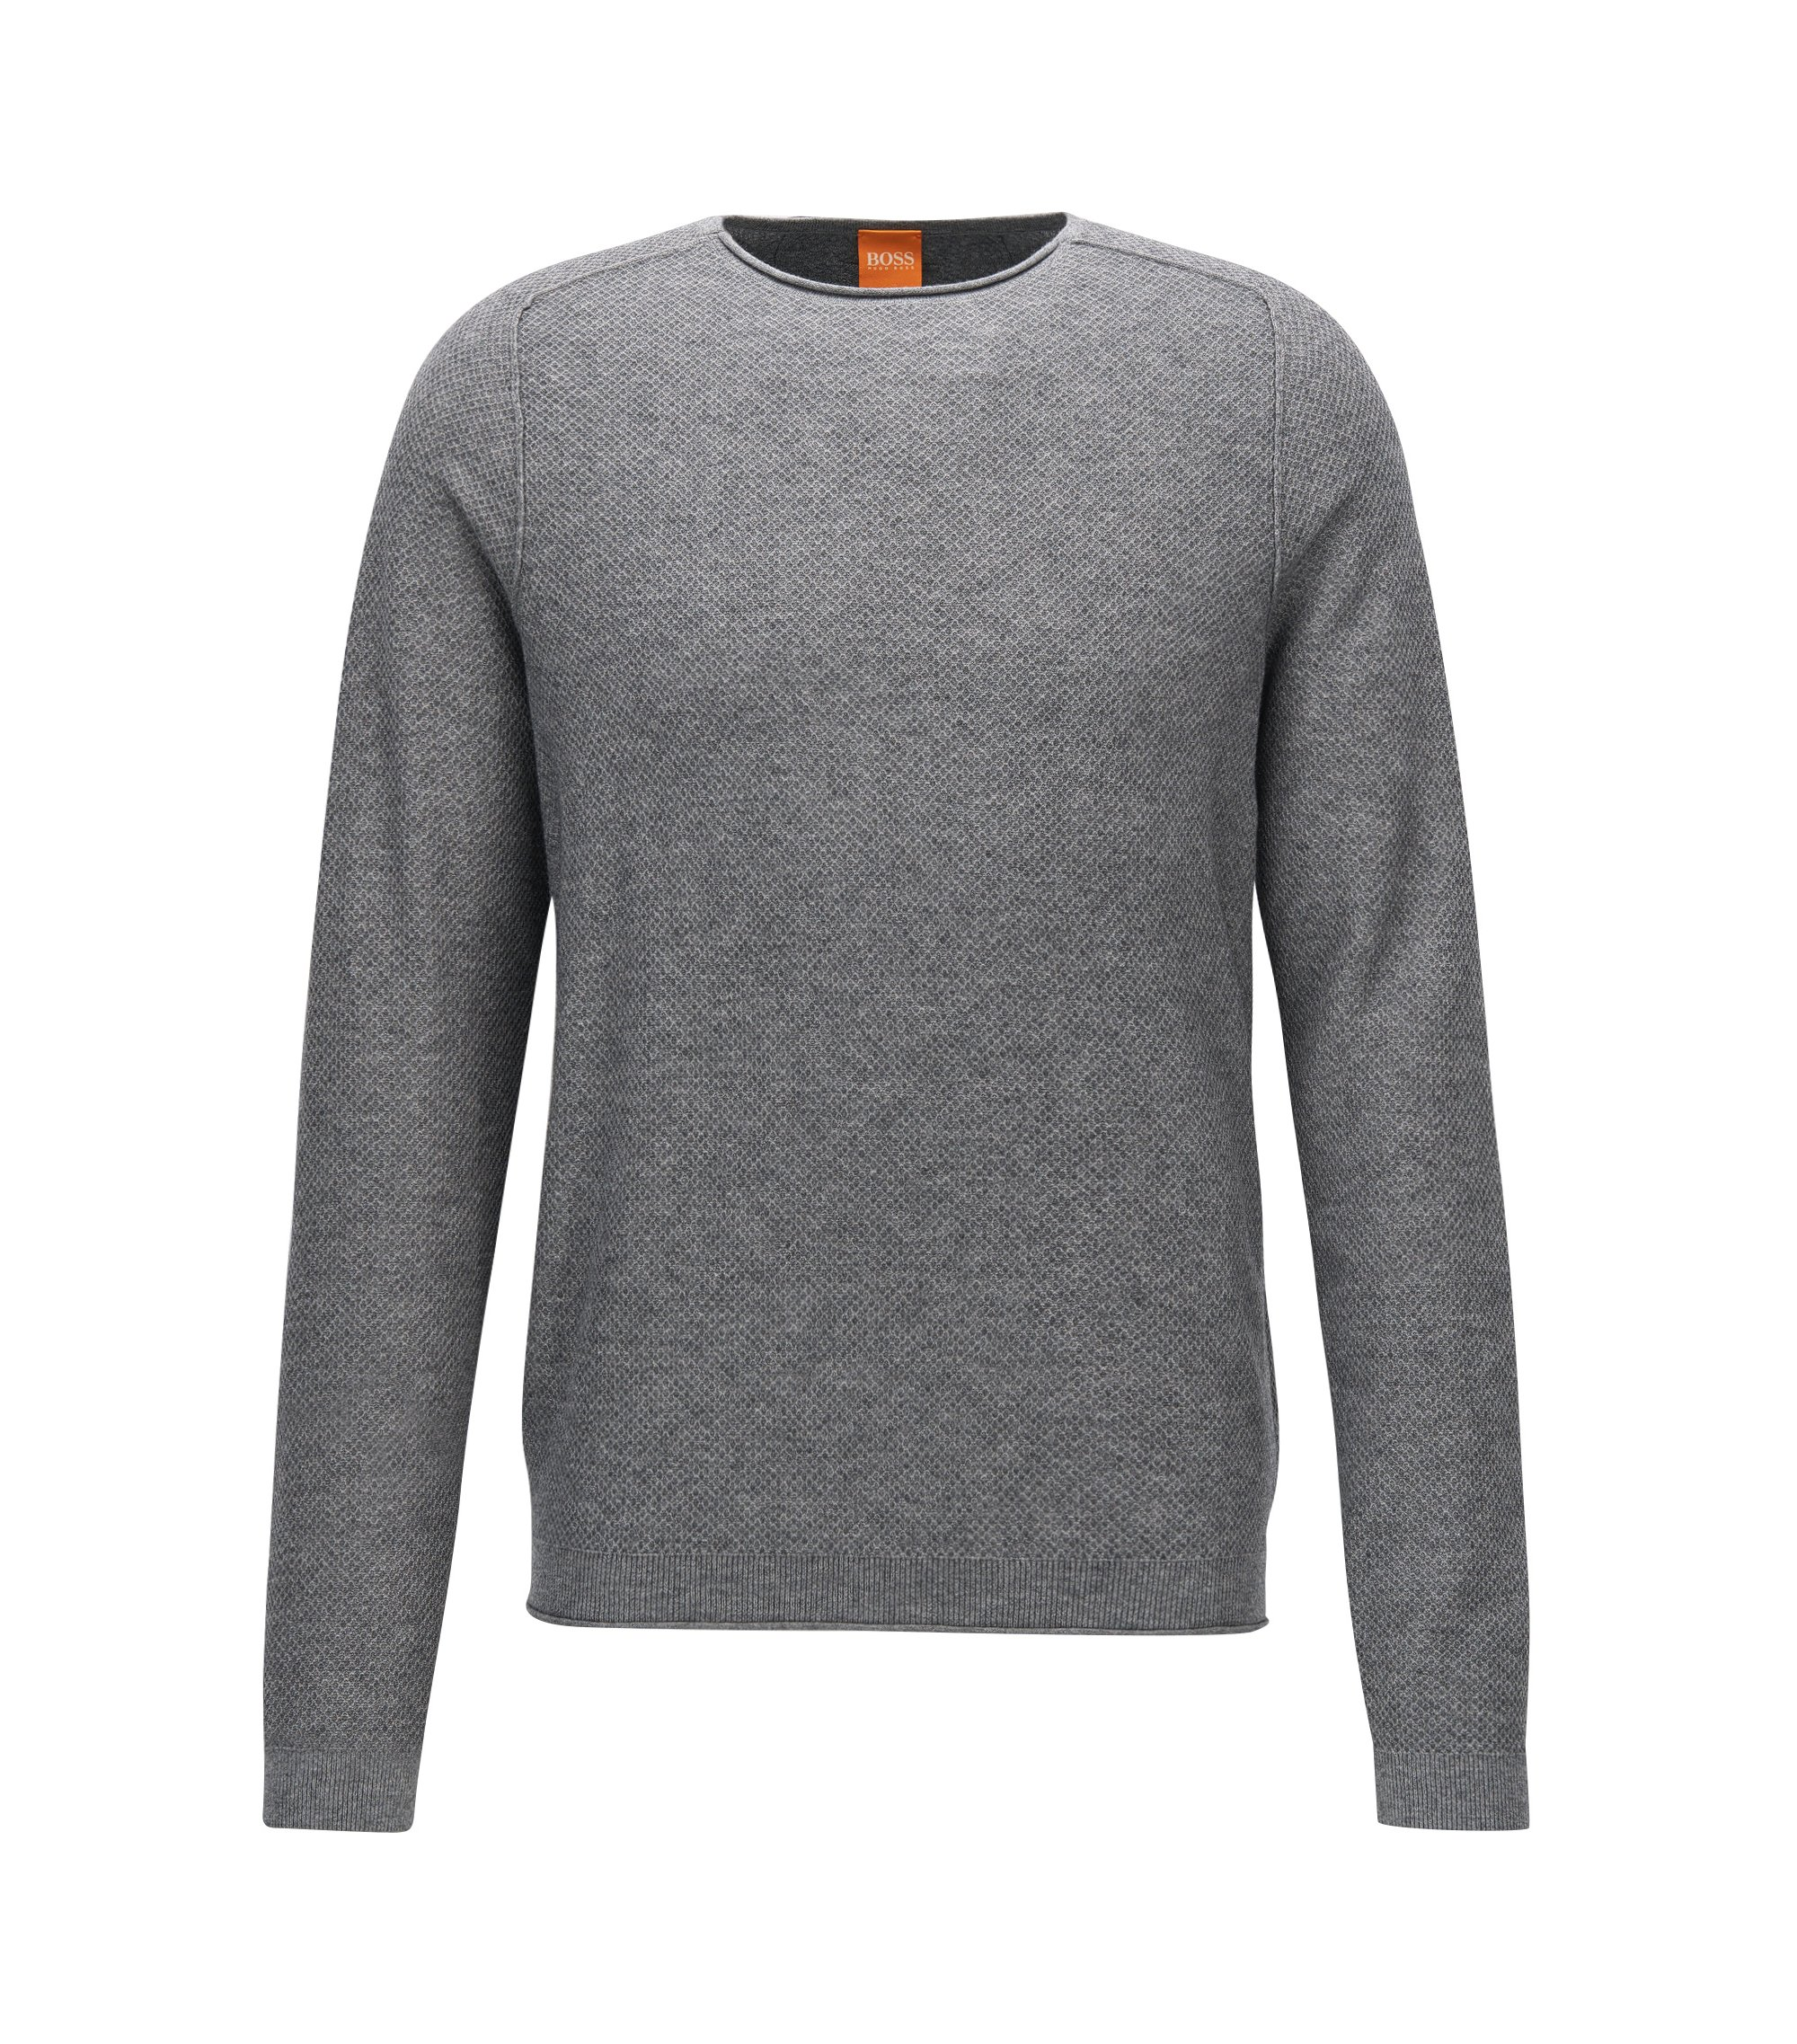 Regular-fit sweater in micro-structure fabric, Grey